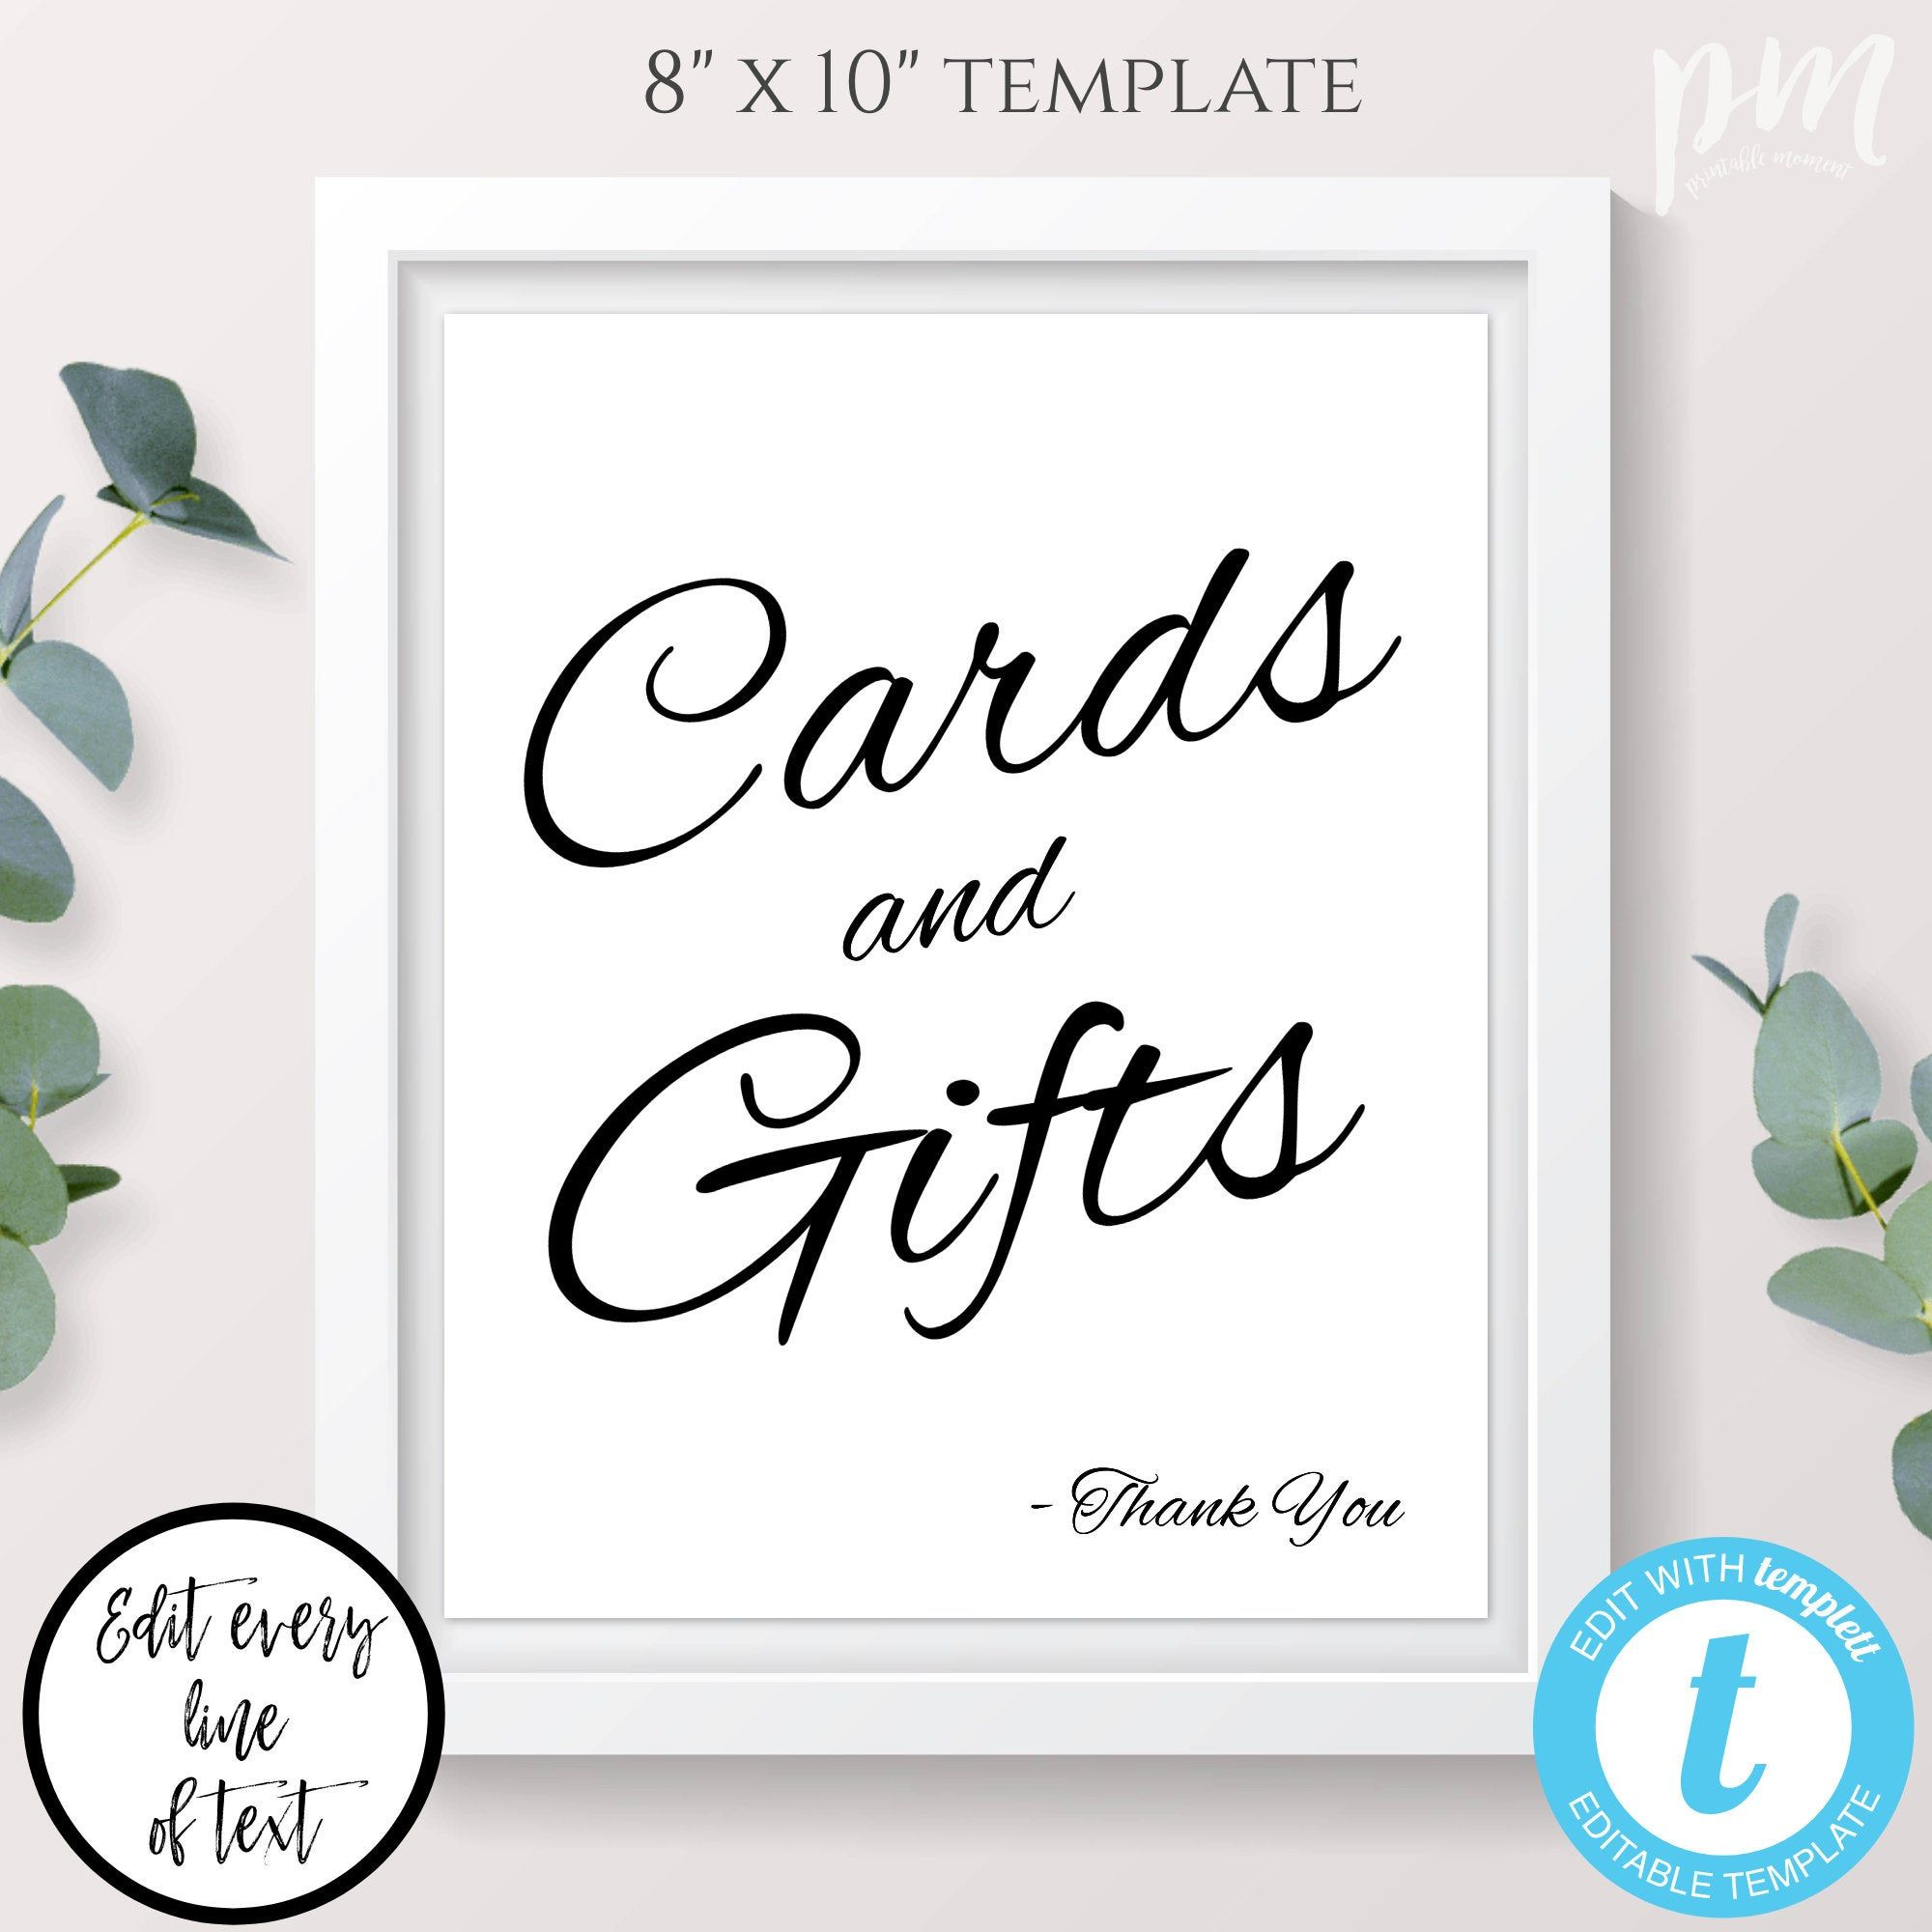 Cards And Gifts Sign Template Editable Calligraphy Wedding Etsy Sign Templates Gifts Sign Cards Sign